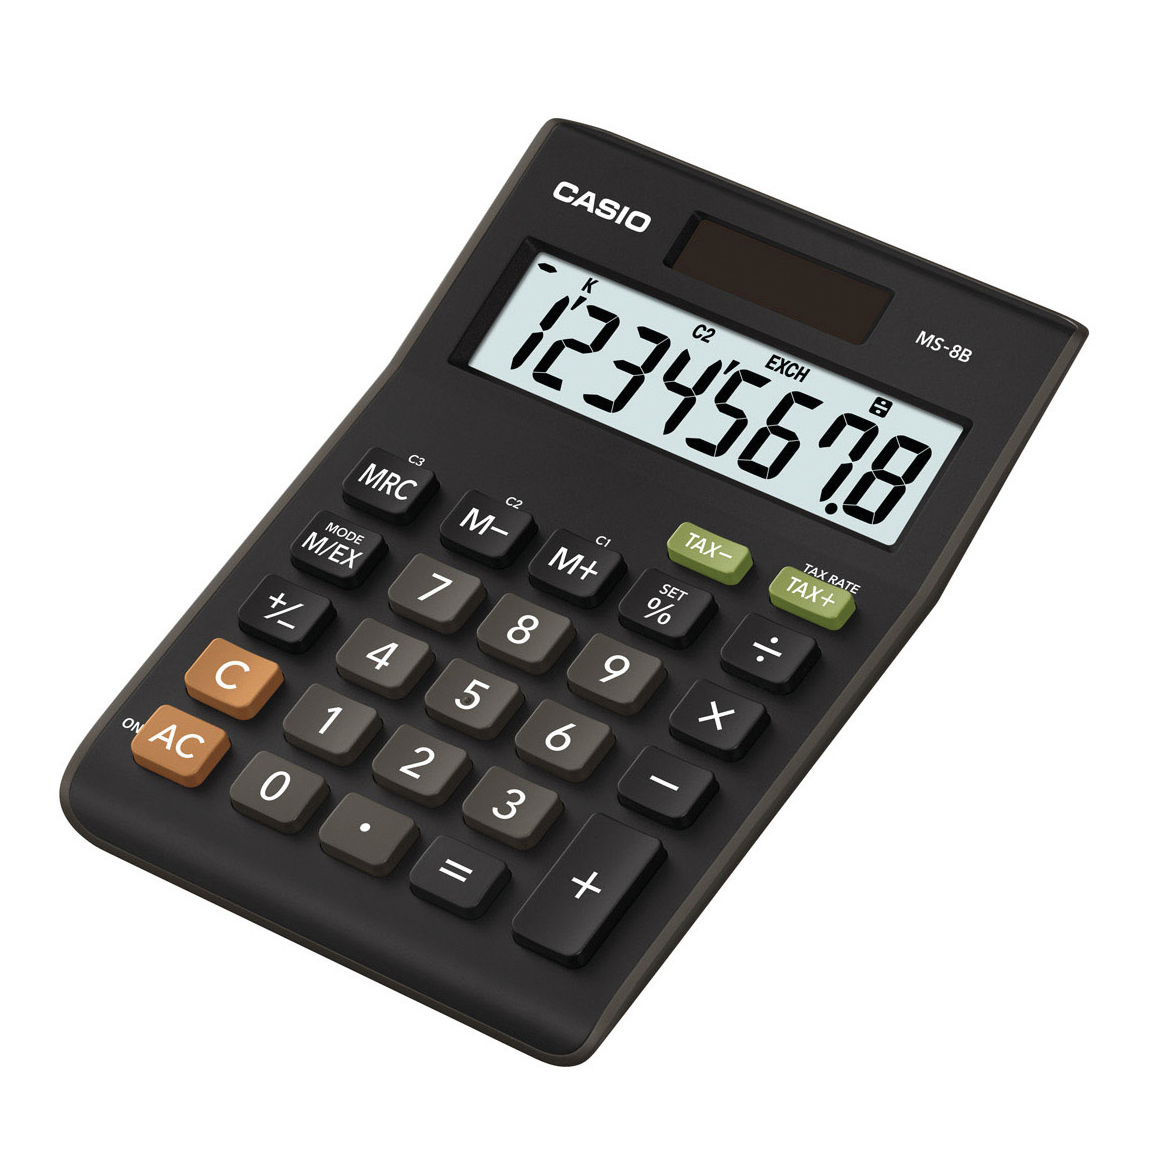 Desktop Calculator Casio Desktop Calculator 8 Digit 3 Key Memory Battery/Solar Power 103x28.8x147mm Black Ref MS-8TV/MS-8B